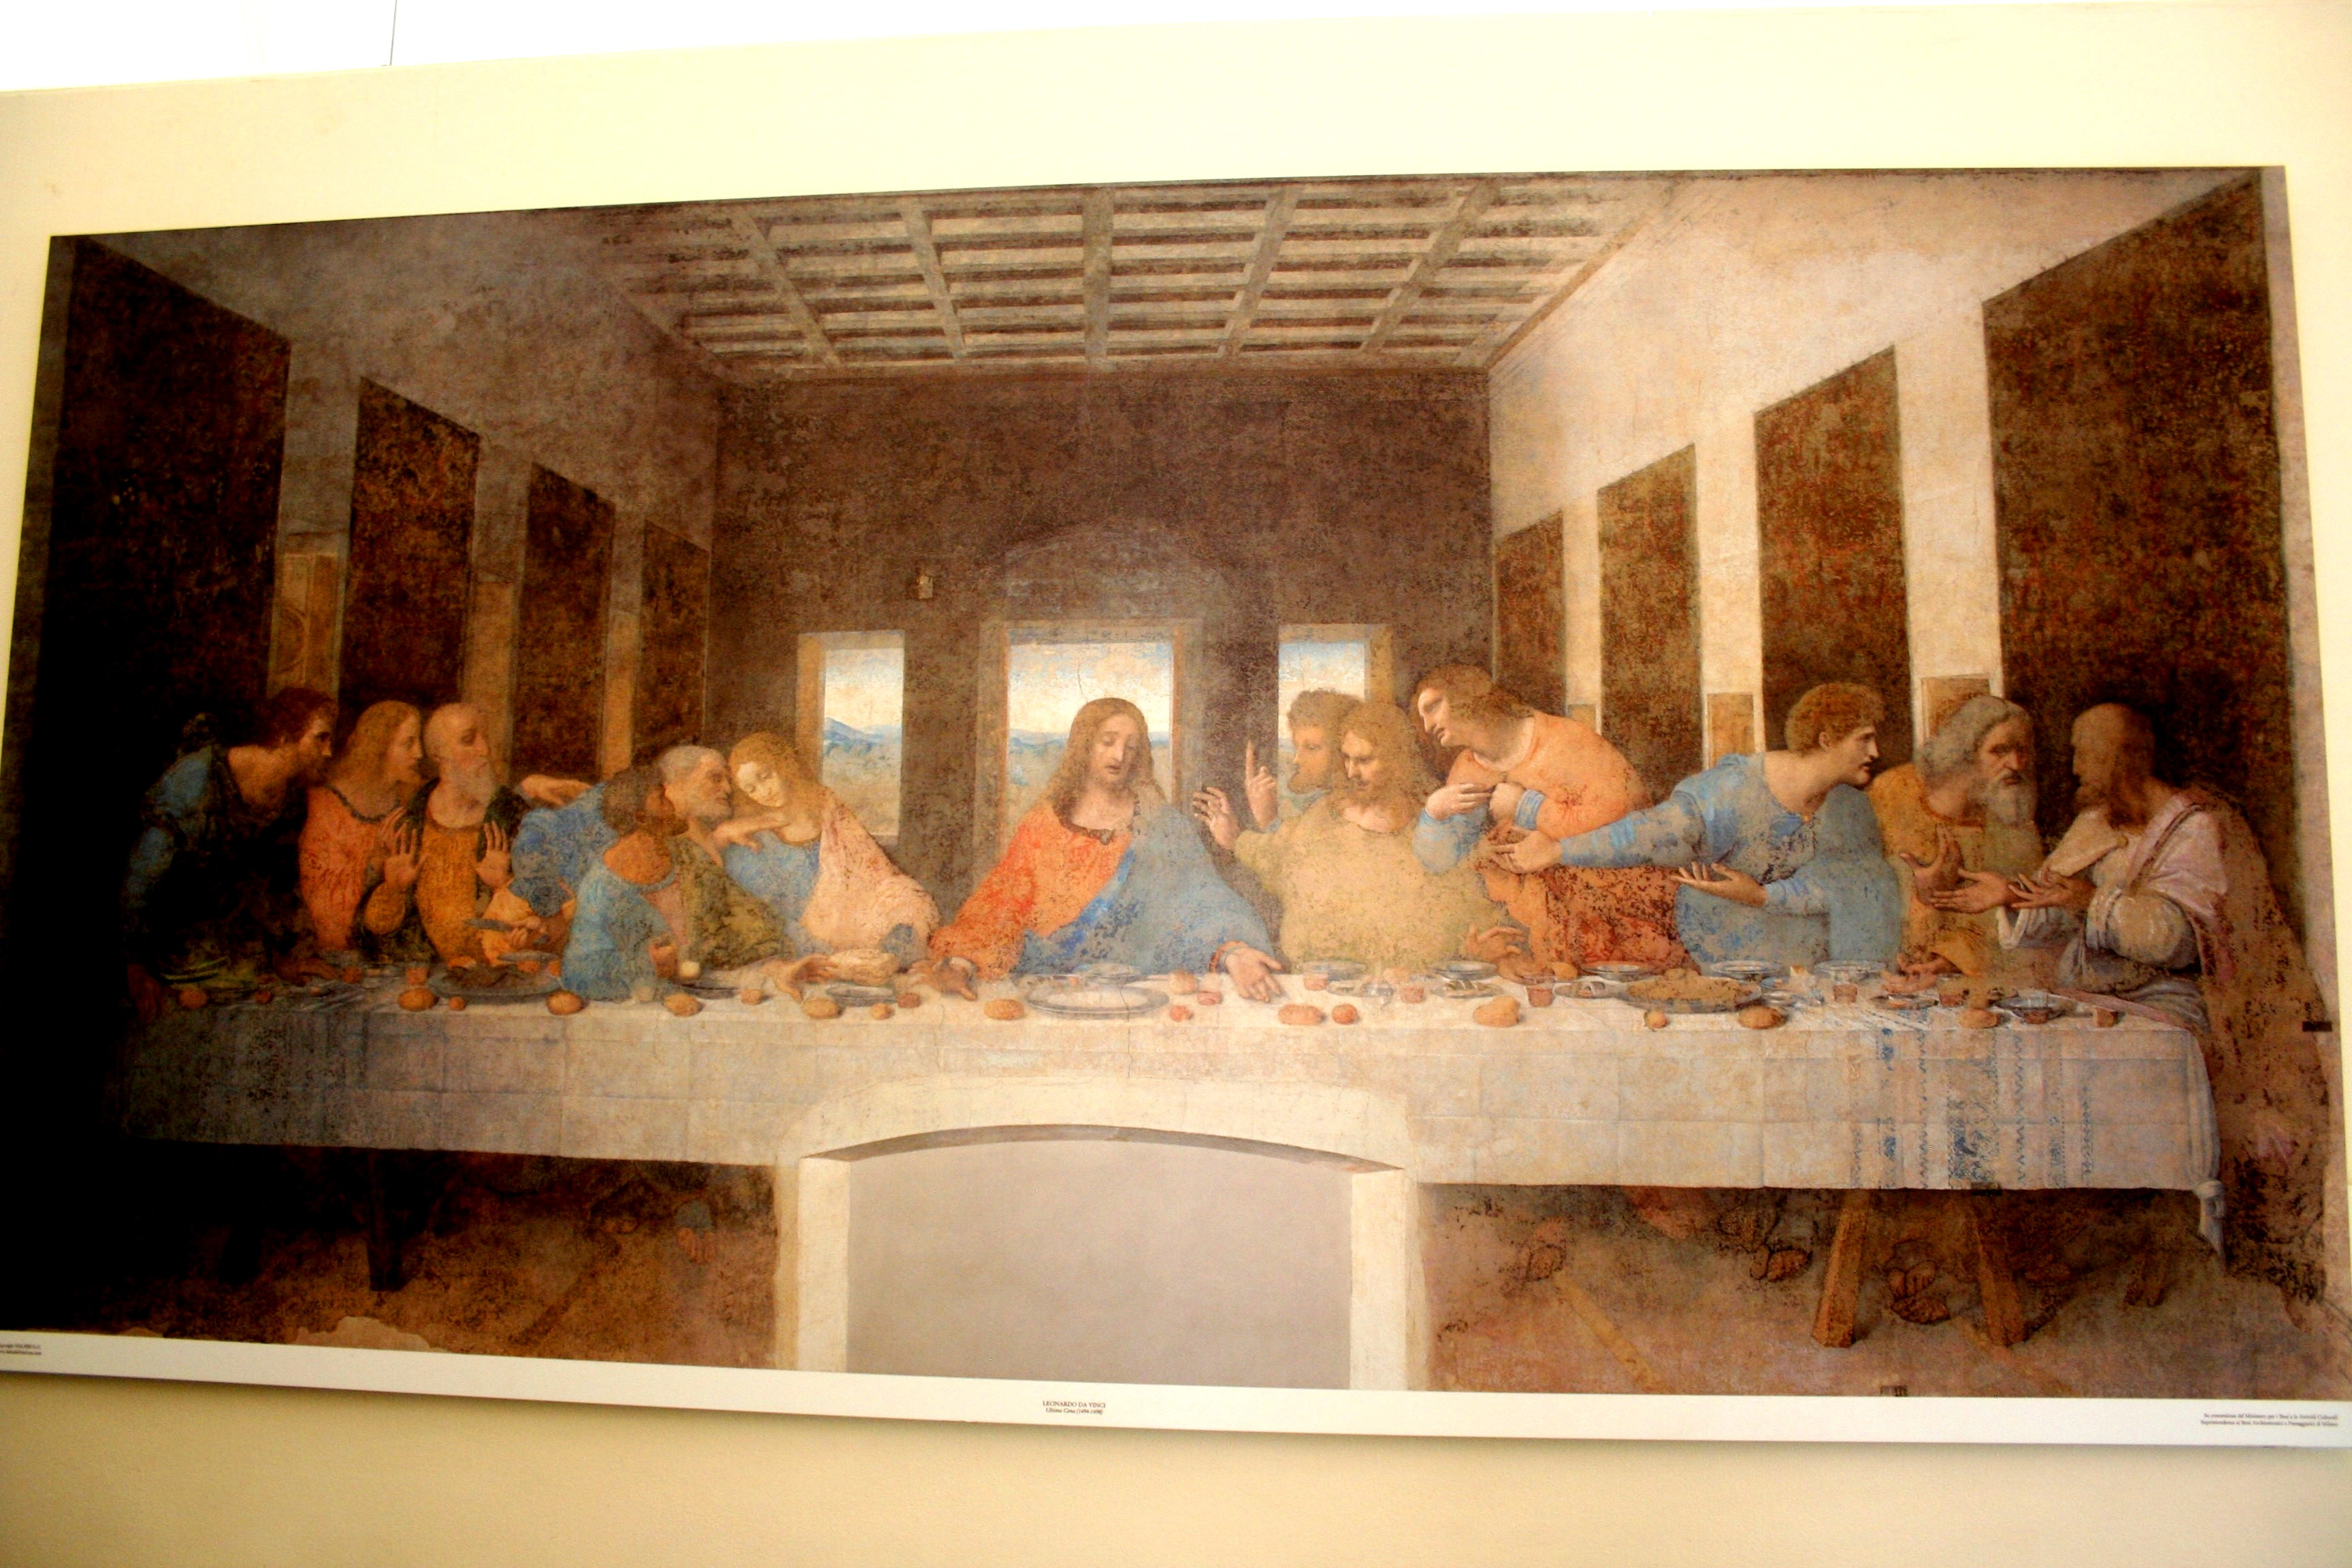 Print of Da Vinci's Last Supper